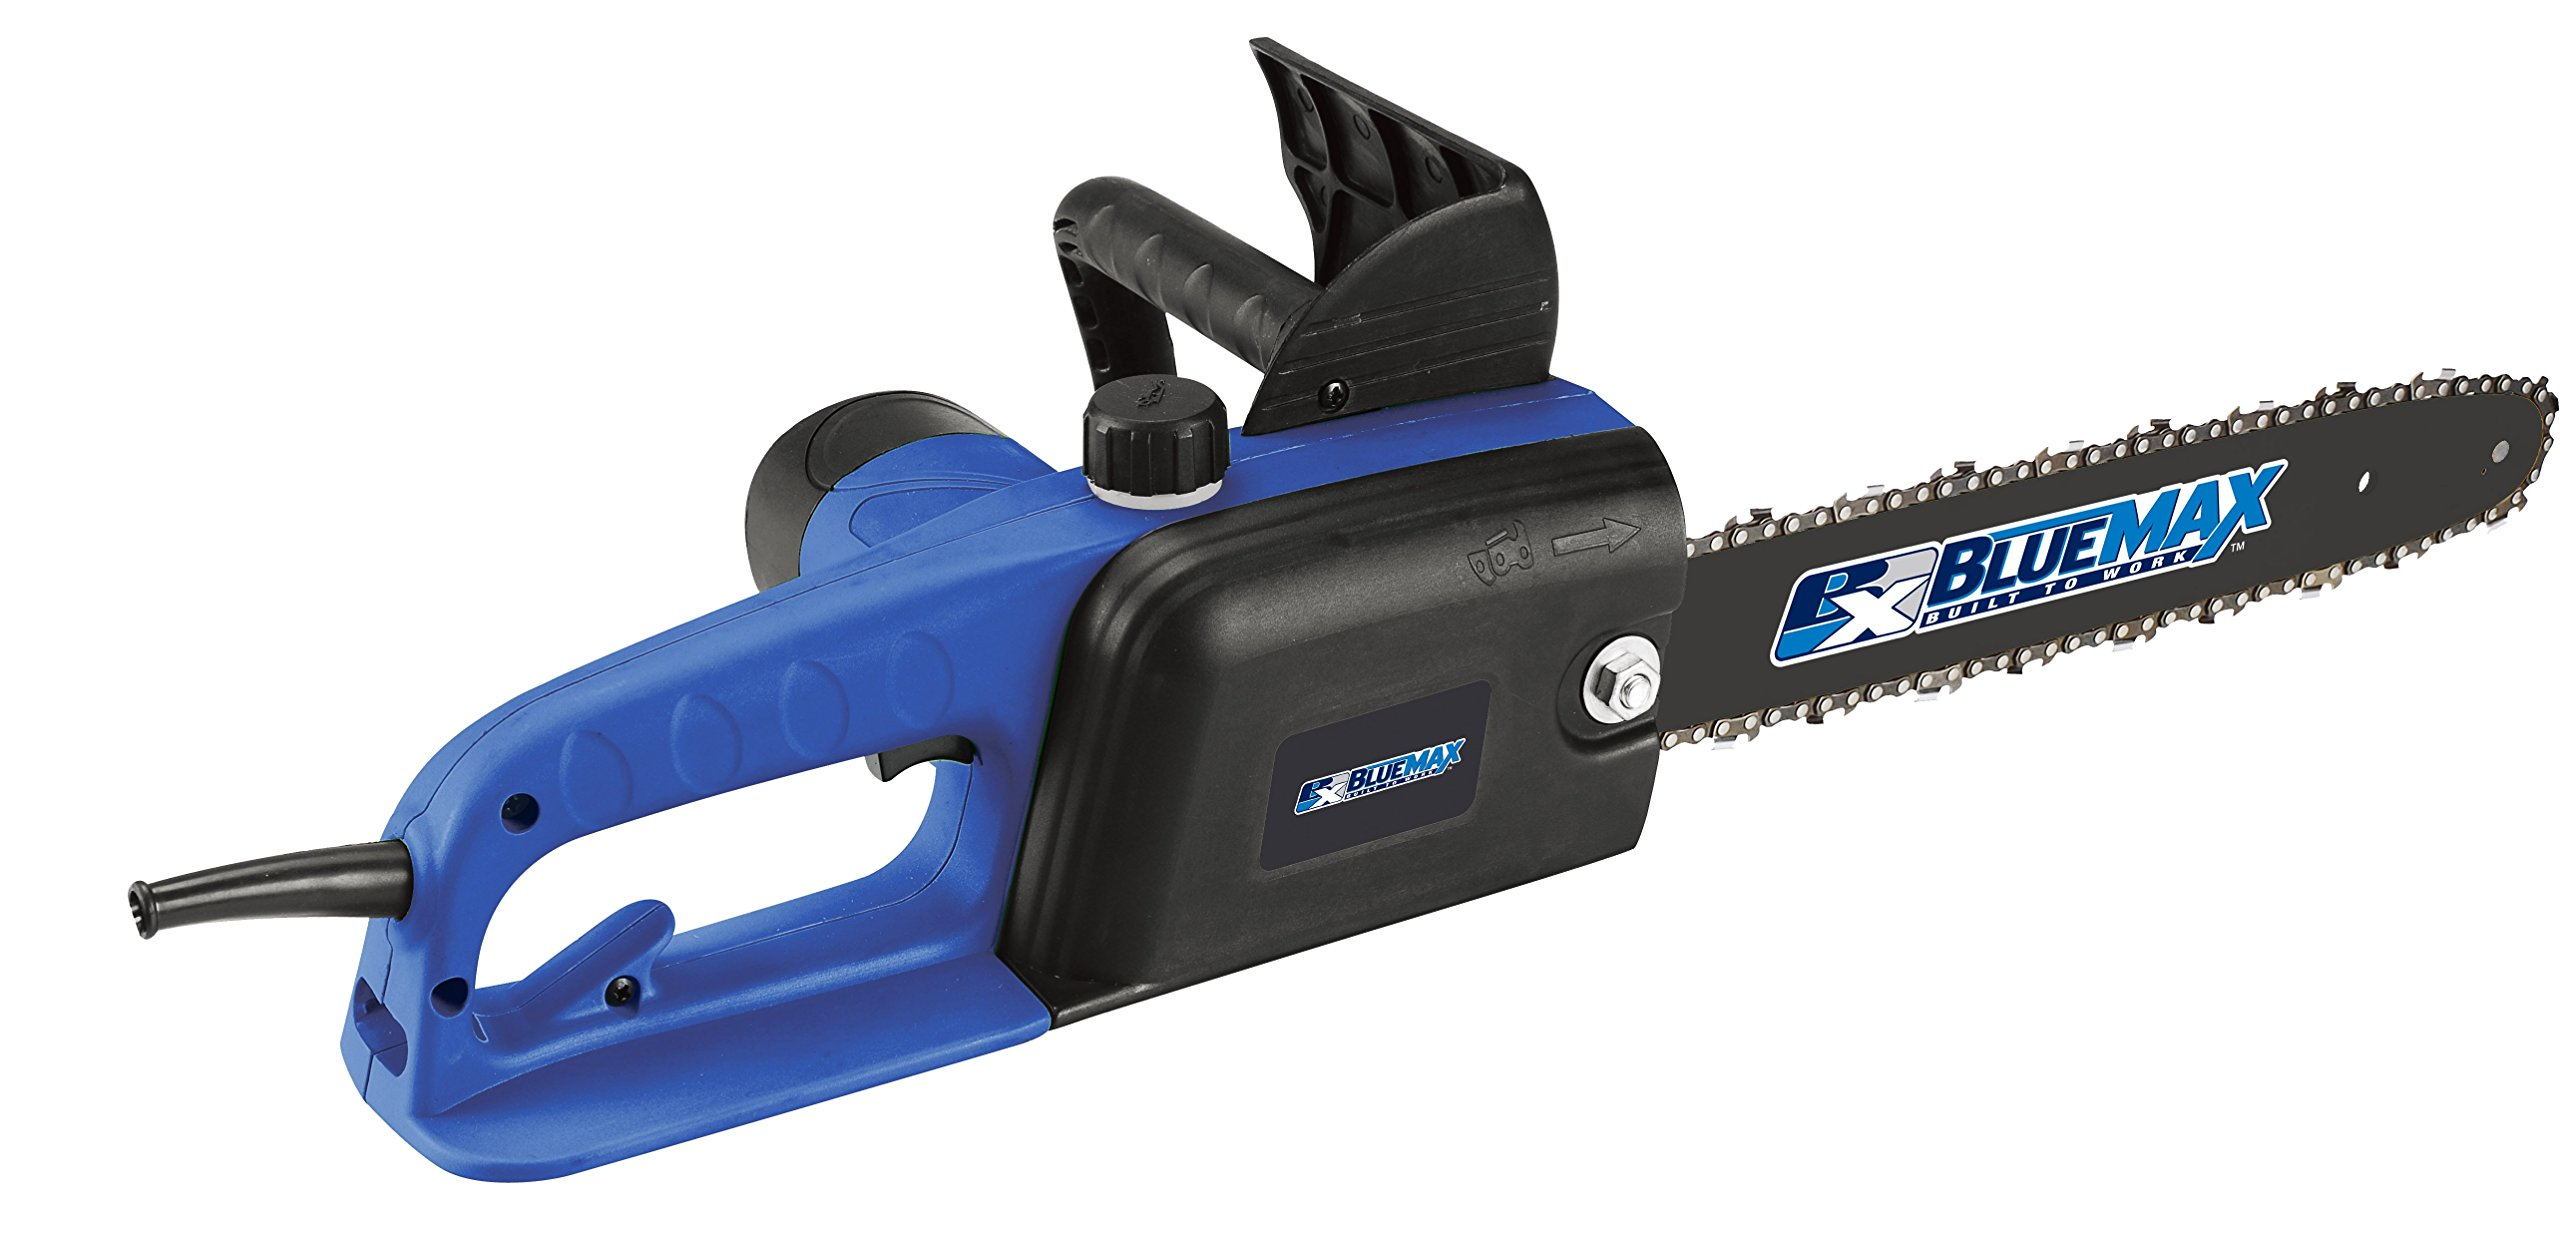 Blue Max 7953 14-Inch Electric Chainsaw with Twist Chain Tensioner